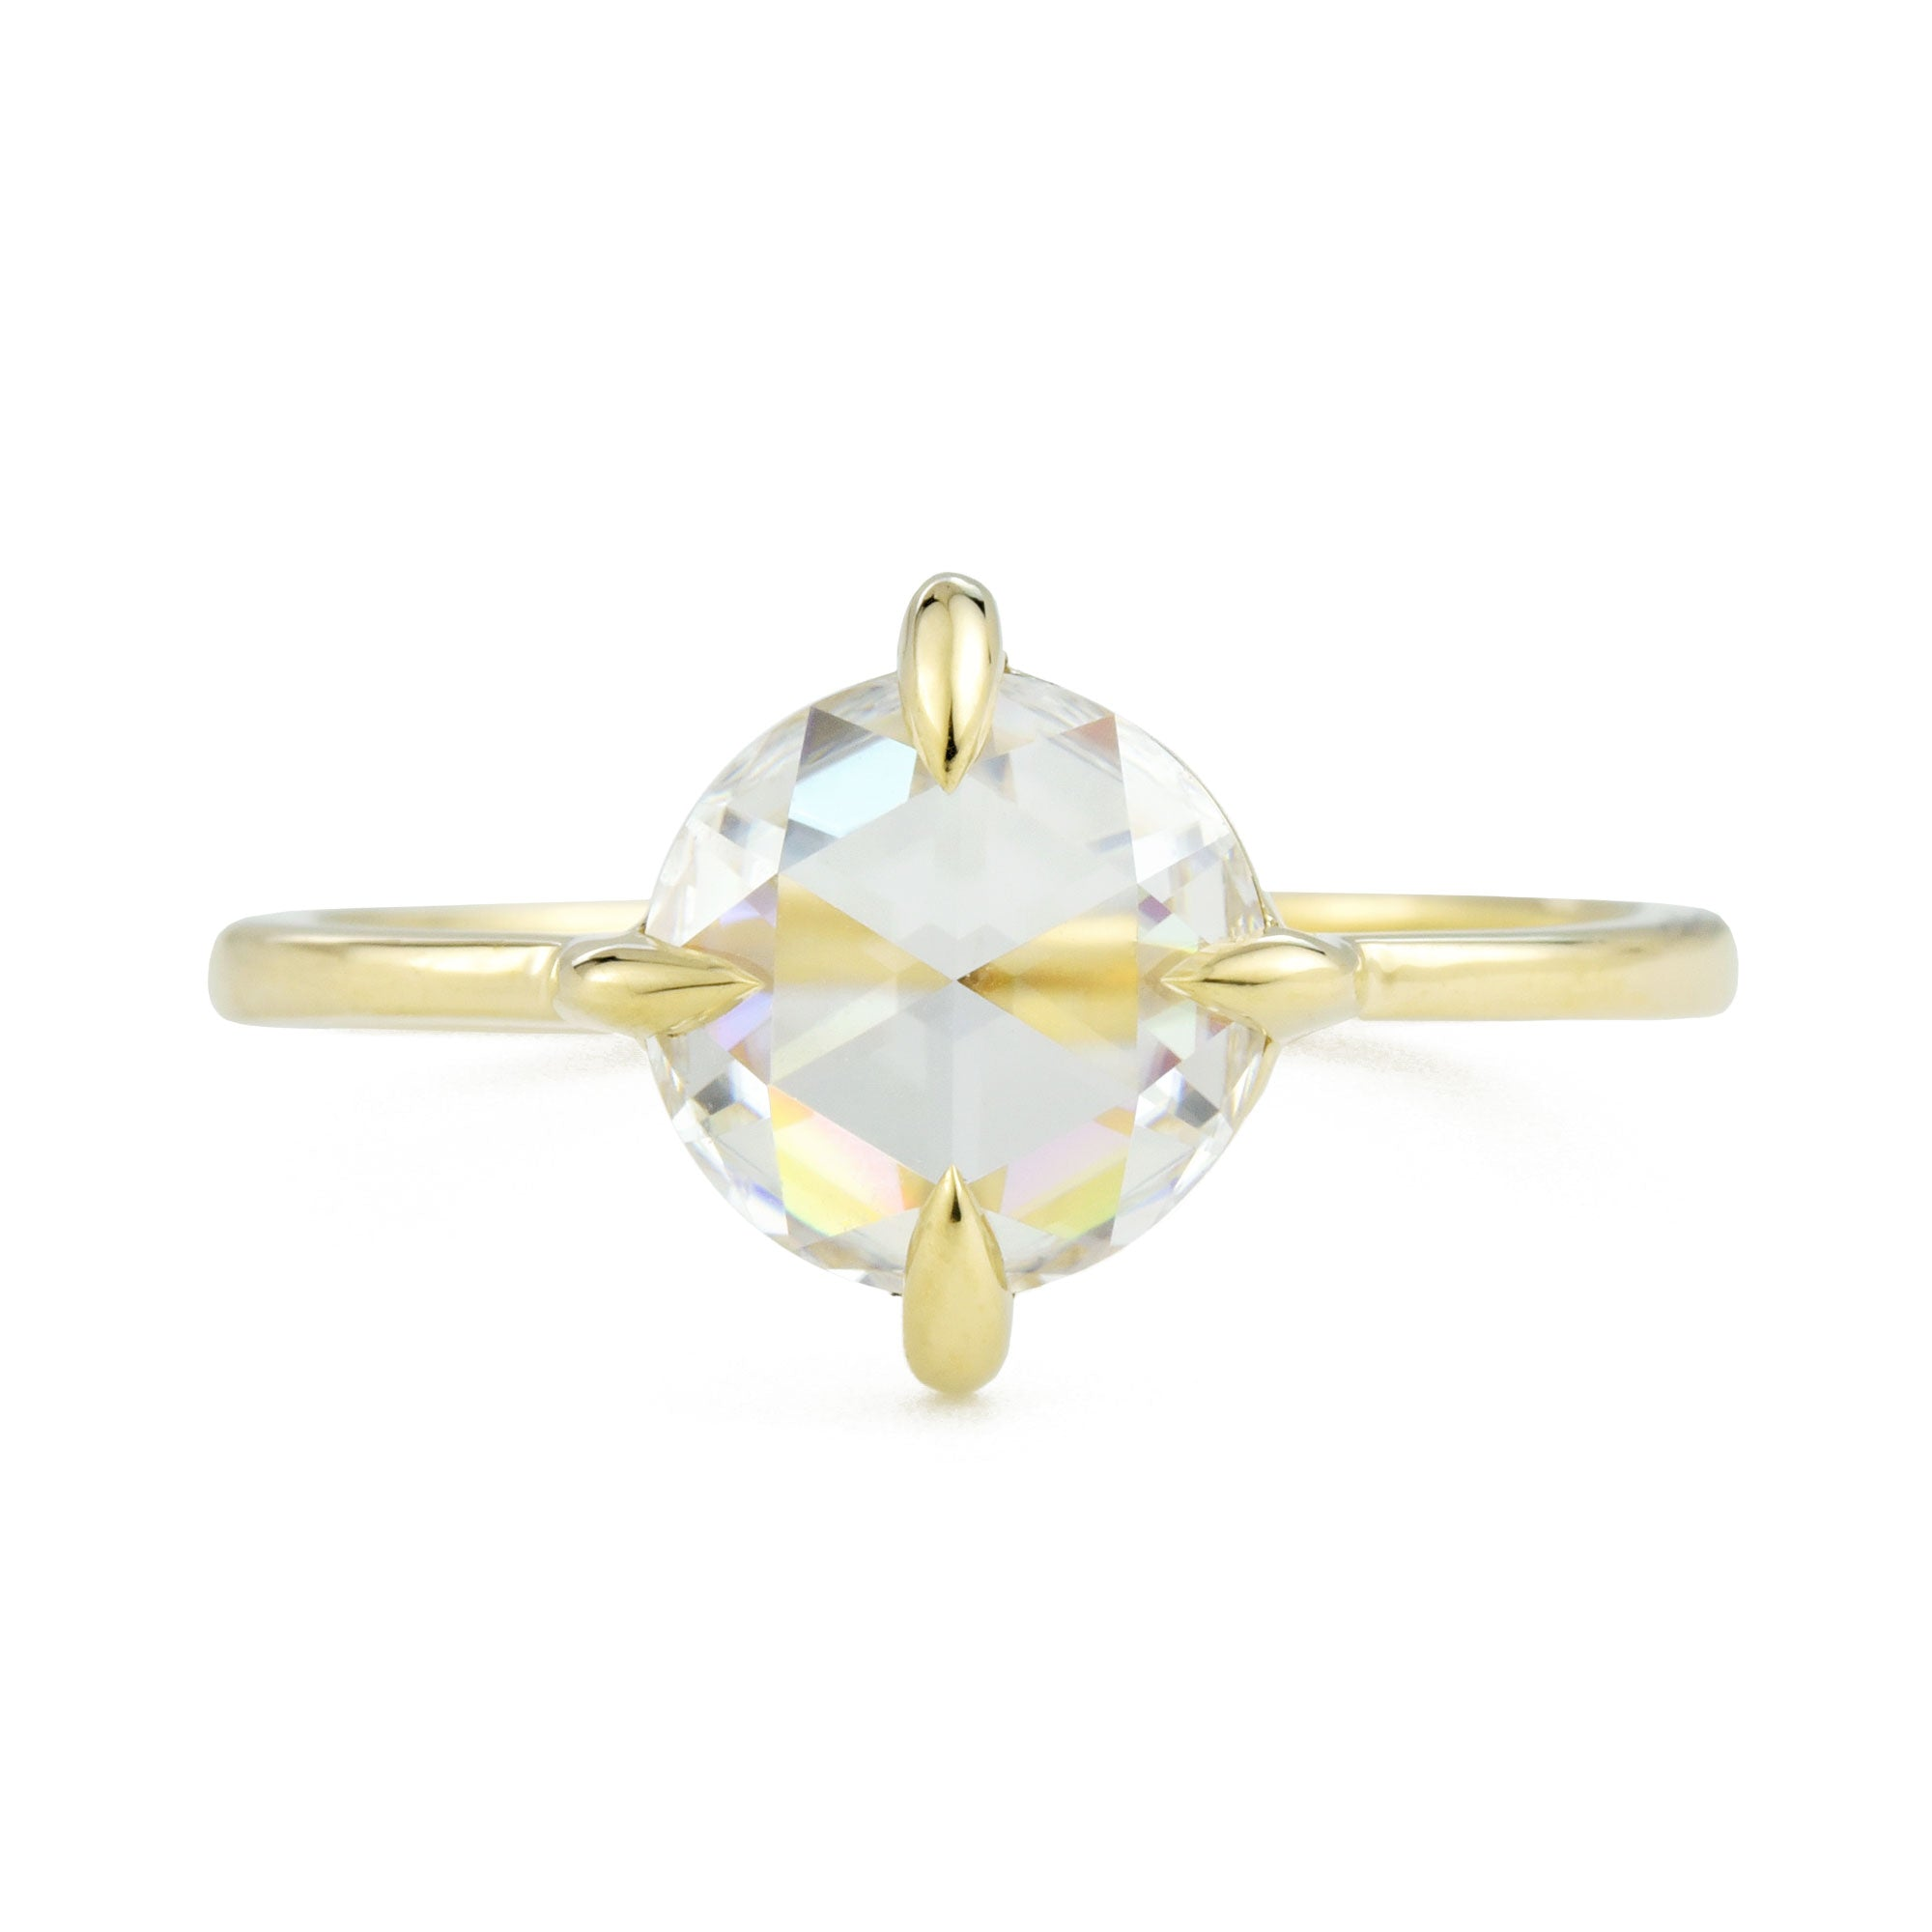 Eva Rose Cut Moissanite Engagement Ring in yellow gold